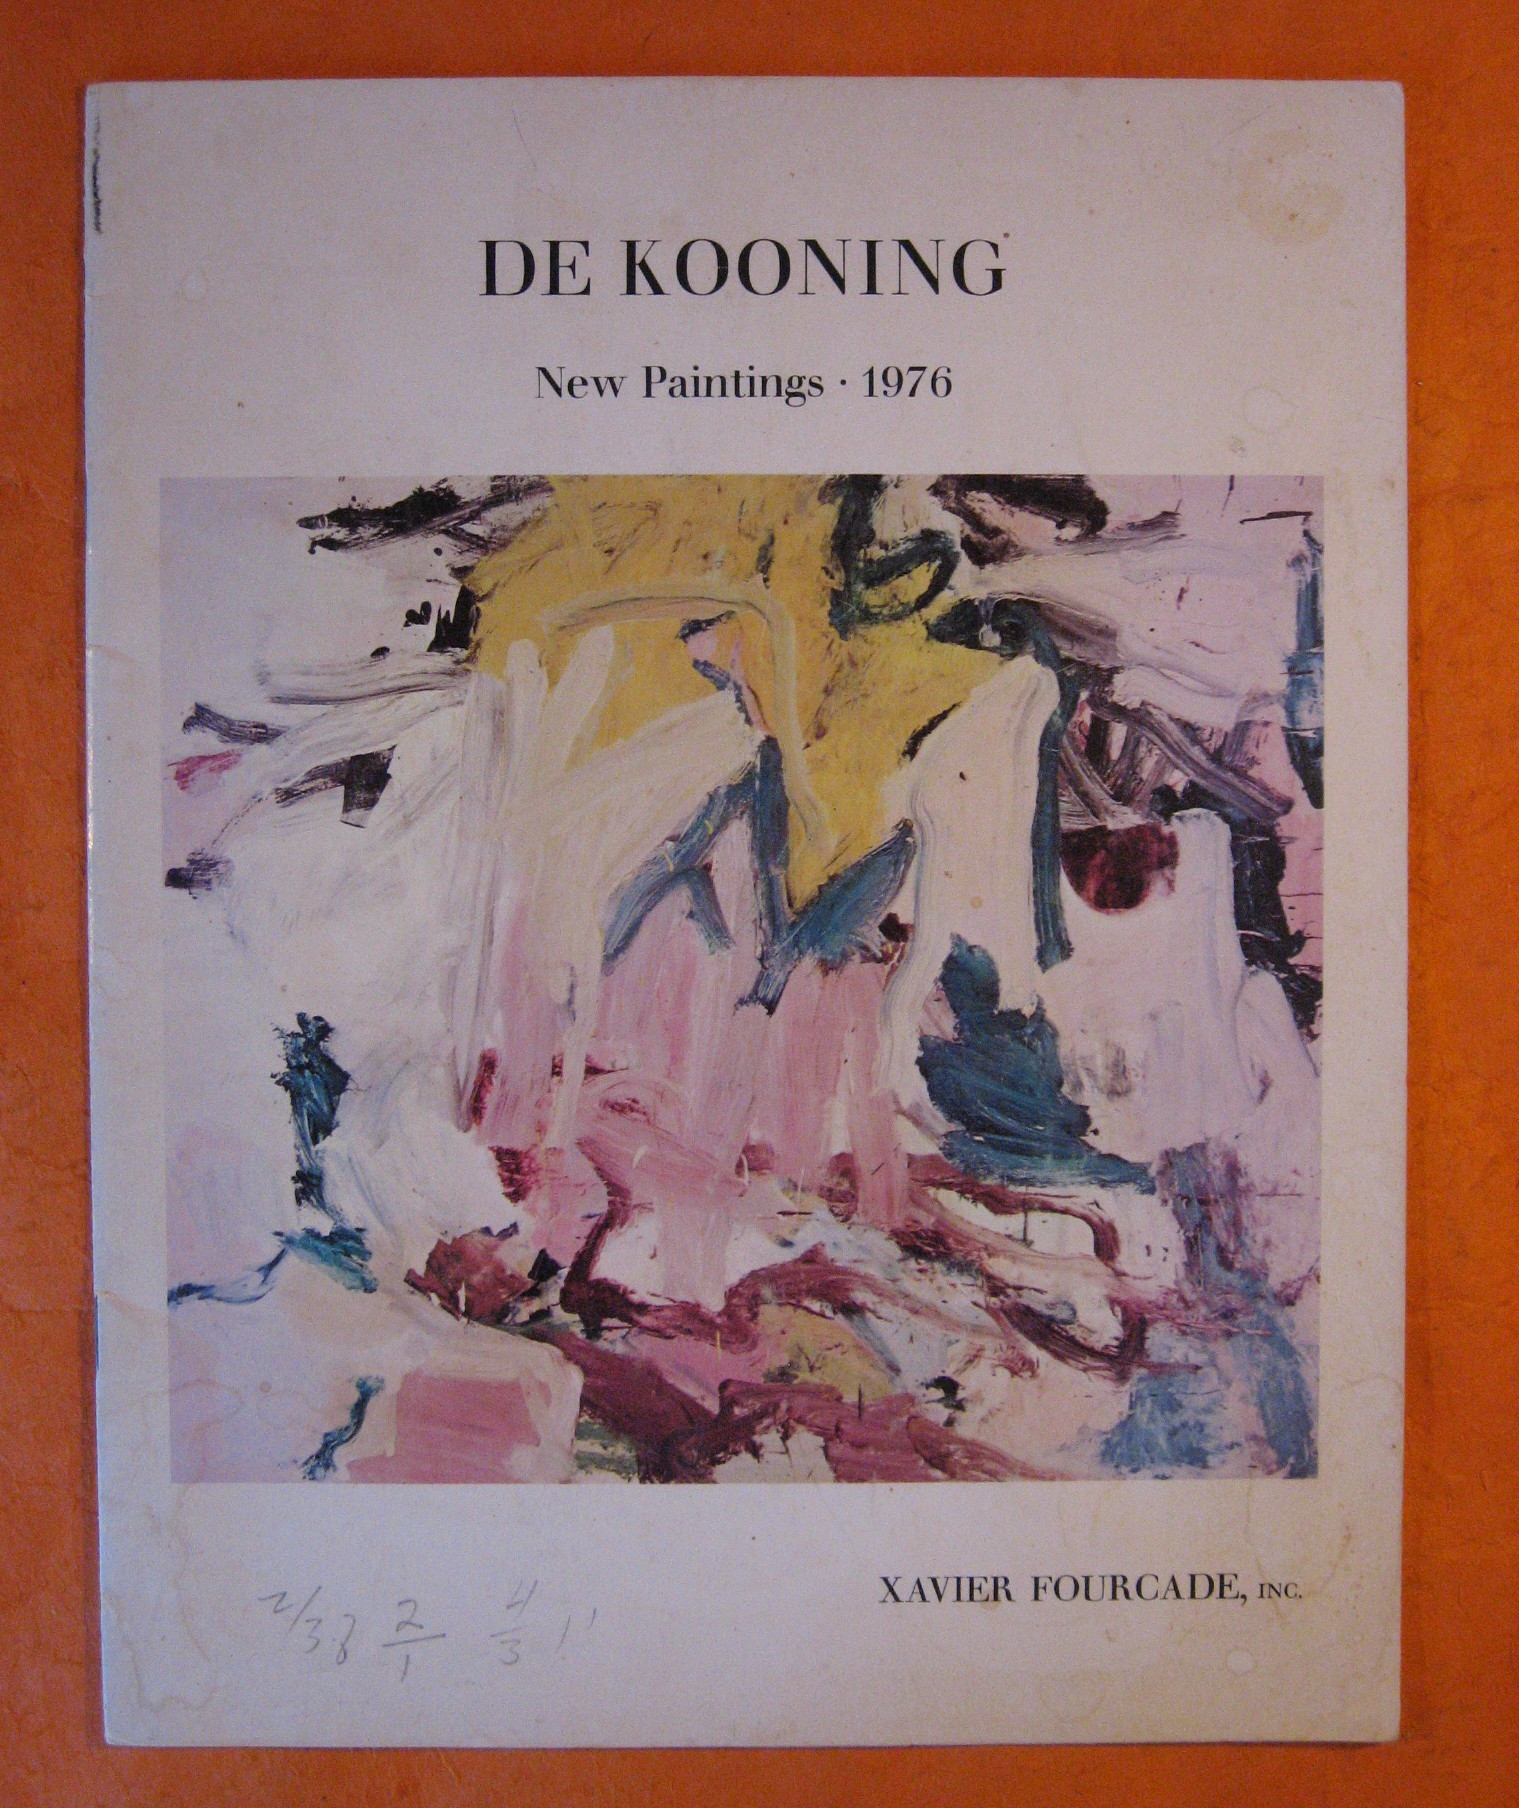 De Kooning:  New Paintings - 1976, De Kooning